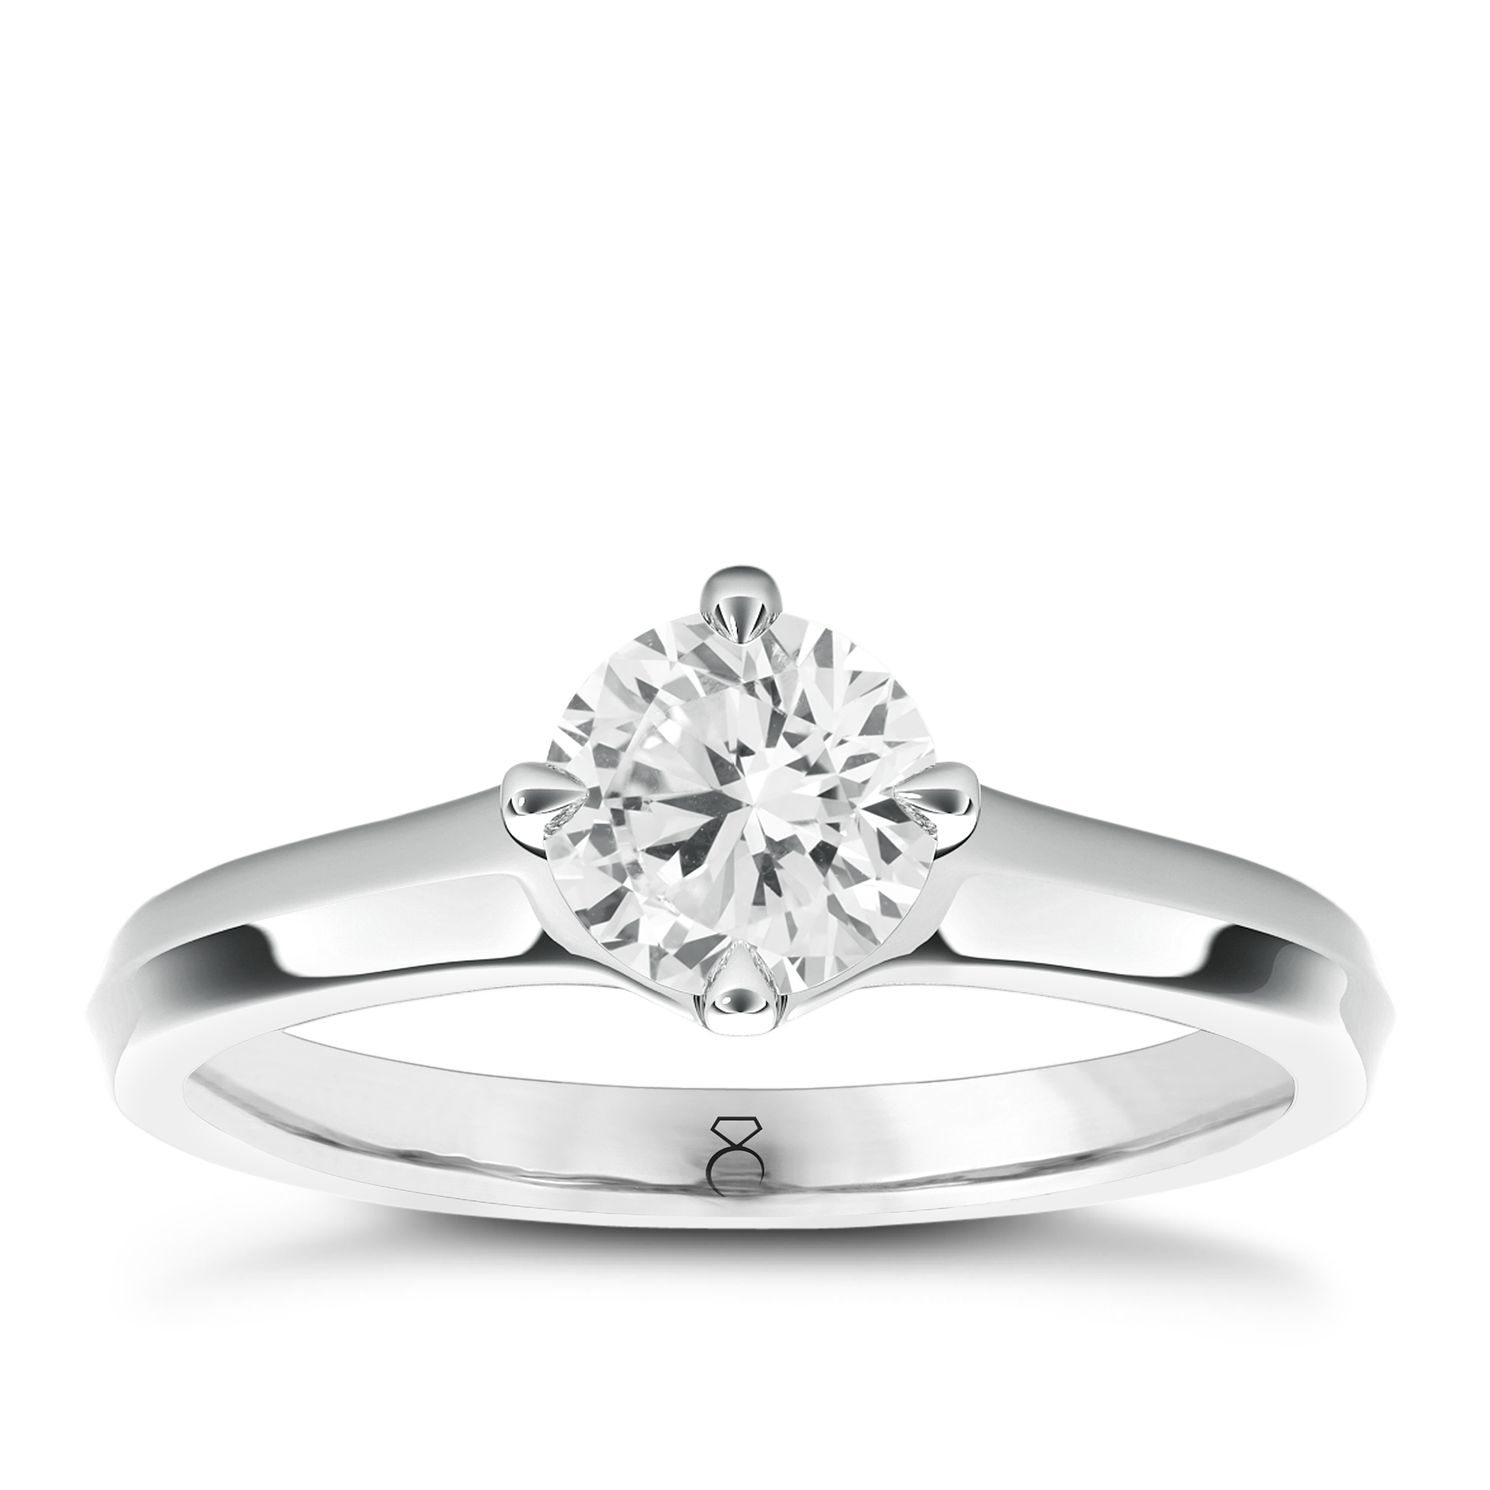 The Diamond Story 18ct White Gold 0.50ct Diamond Ring - Product number 5424135